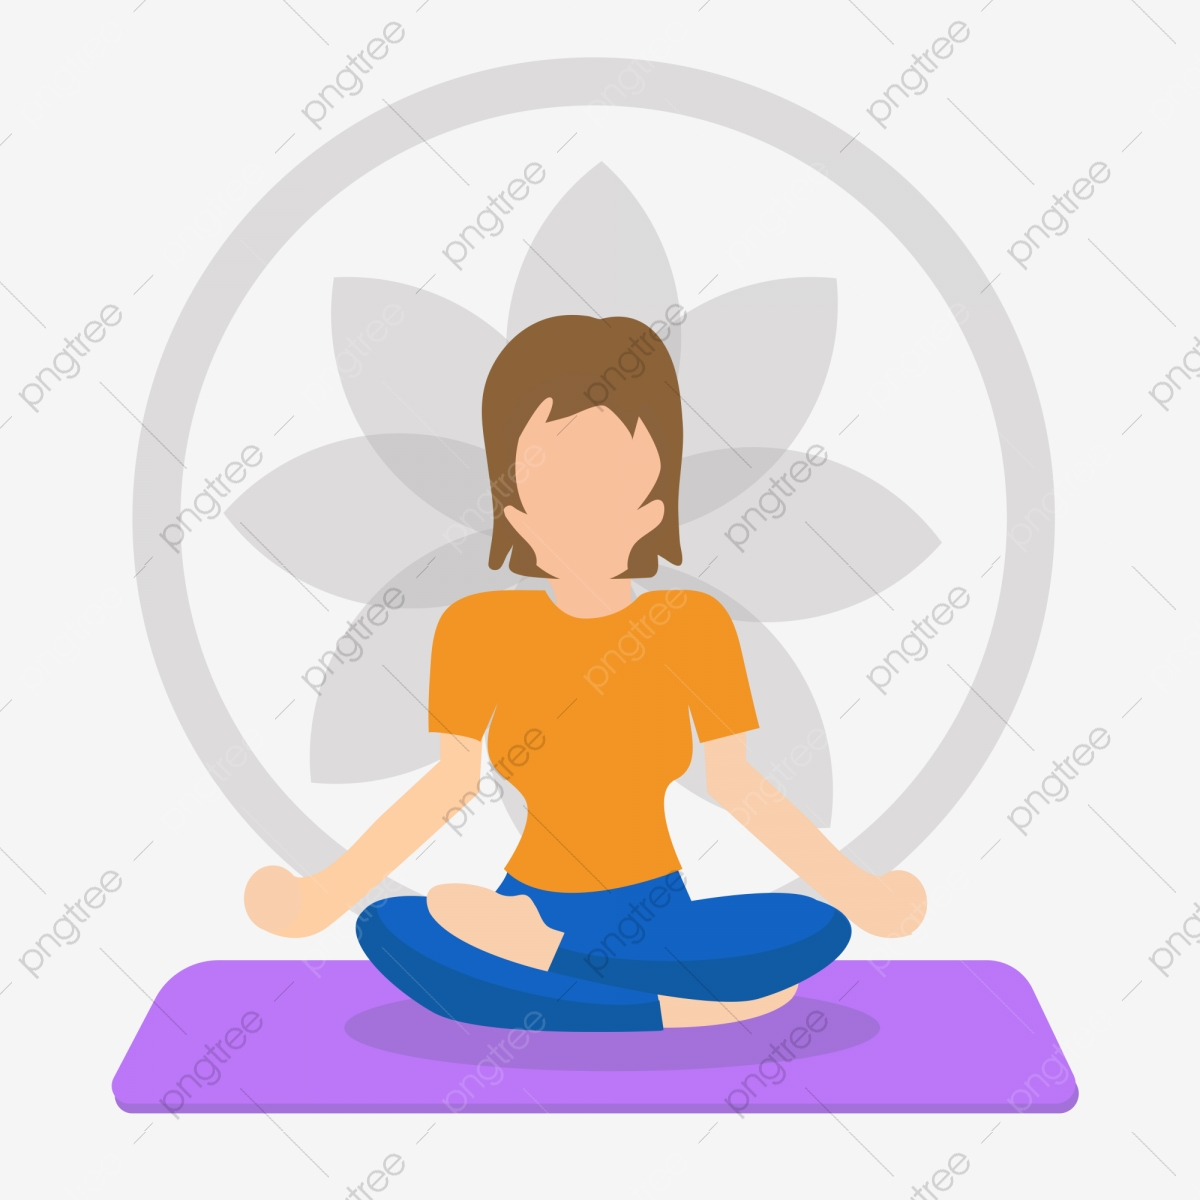 Yoga Woman Sitting Yoga Mat Yoga Day Fitness Gym Motion Png And Vector With Transparent Background For Free Download